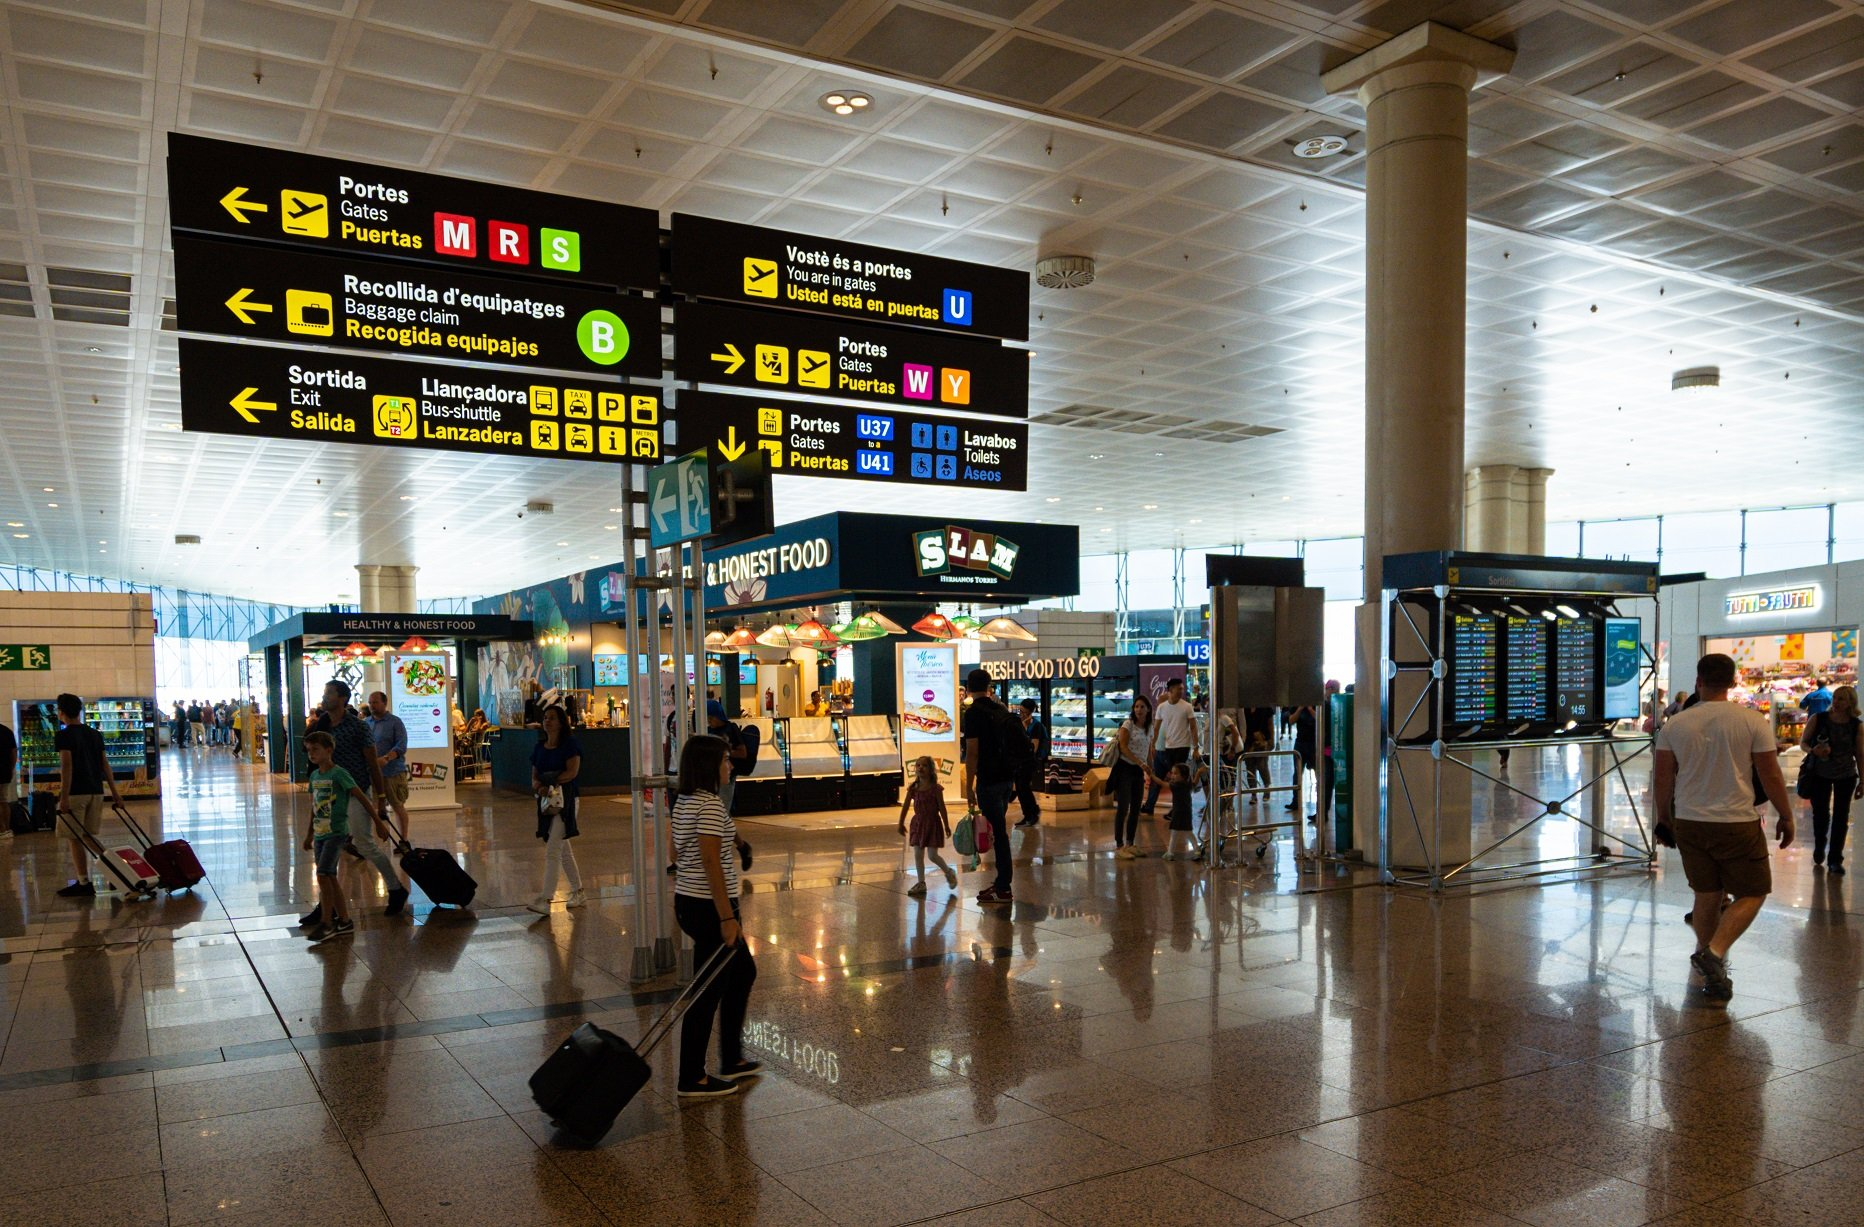 Getting to Barcelona Airport